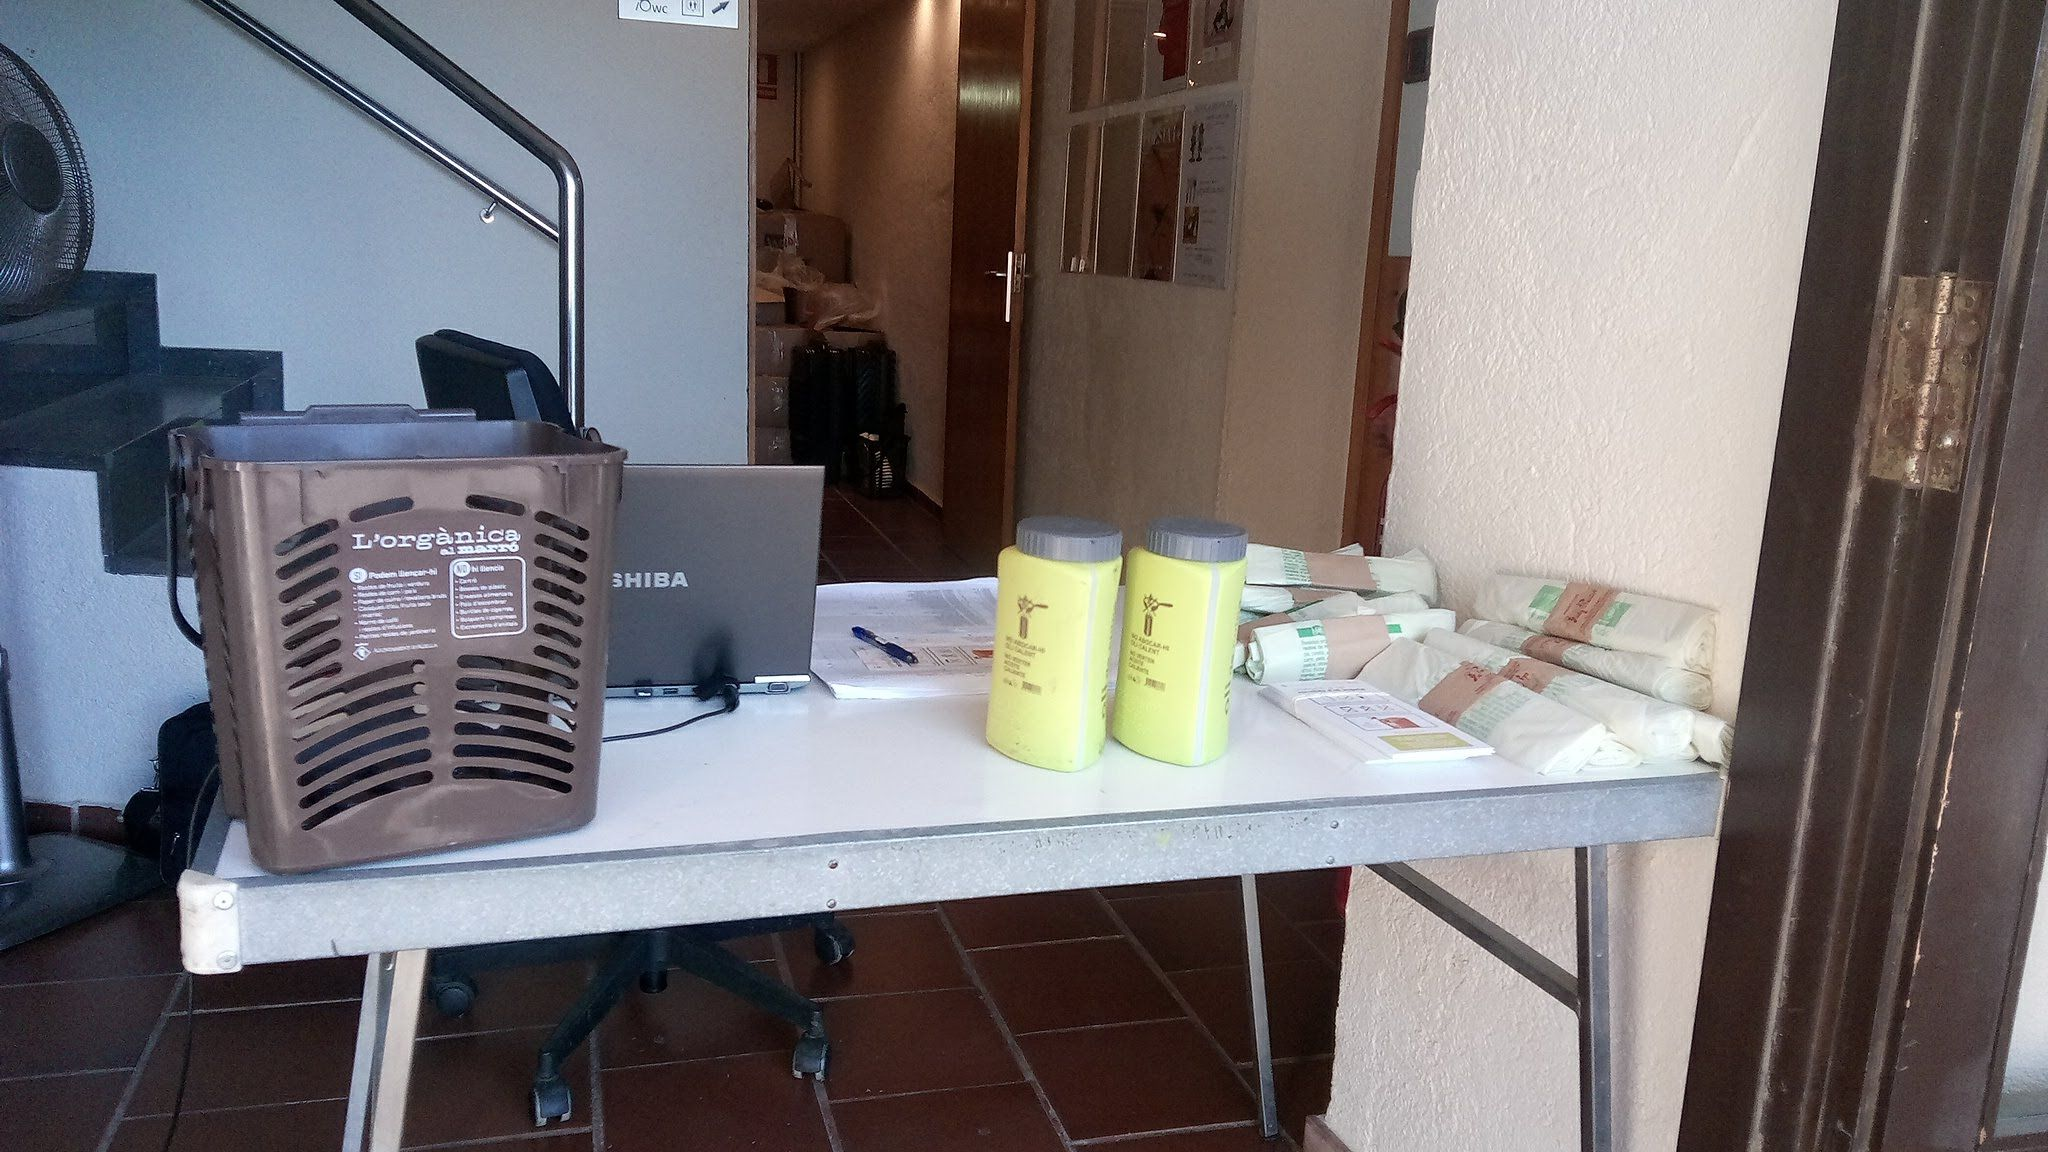 Lliurament de bosses compostables